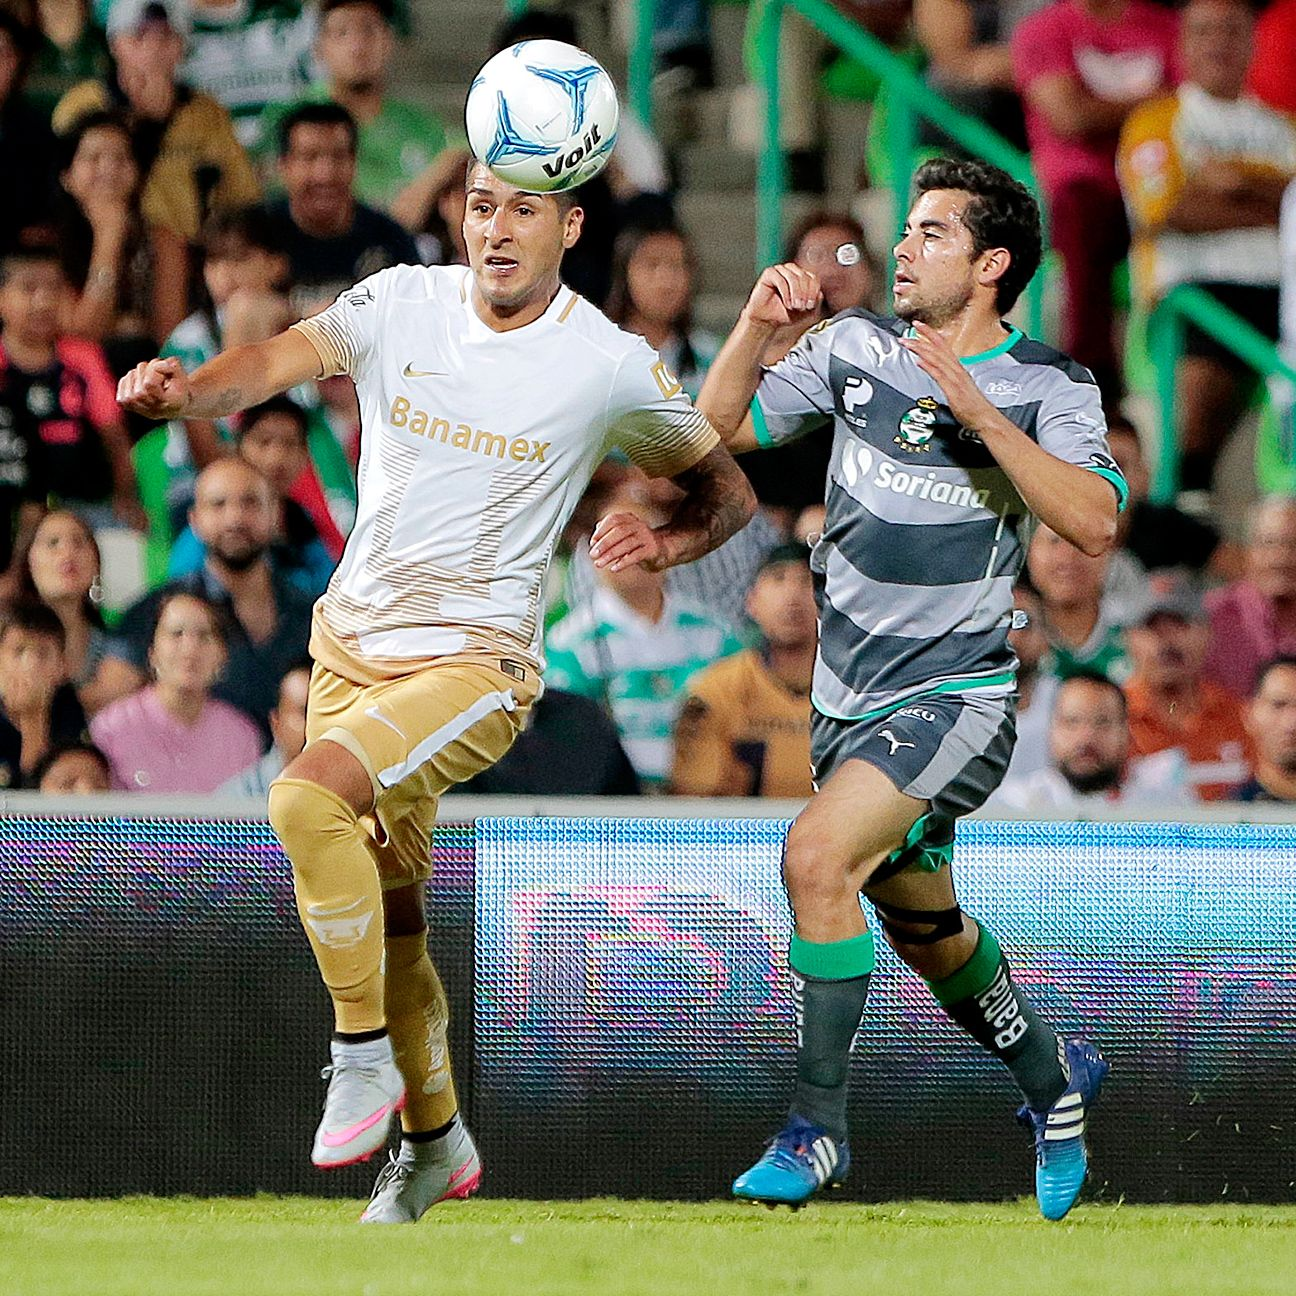 Pumas' Ismael Sosa was a thorn in the side of the Santos defense over the weekend.